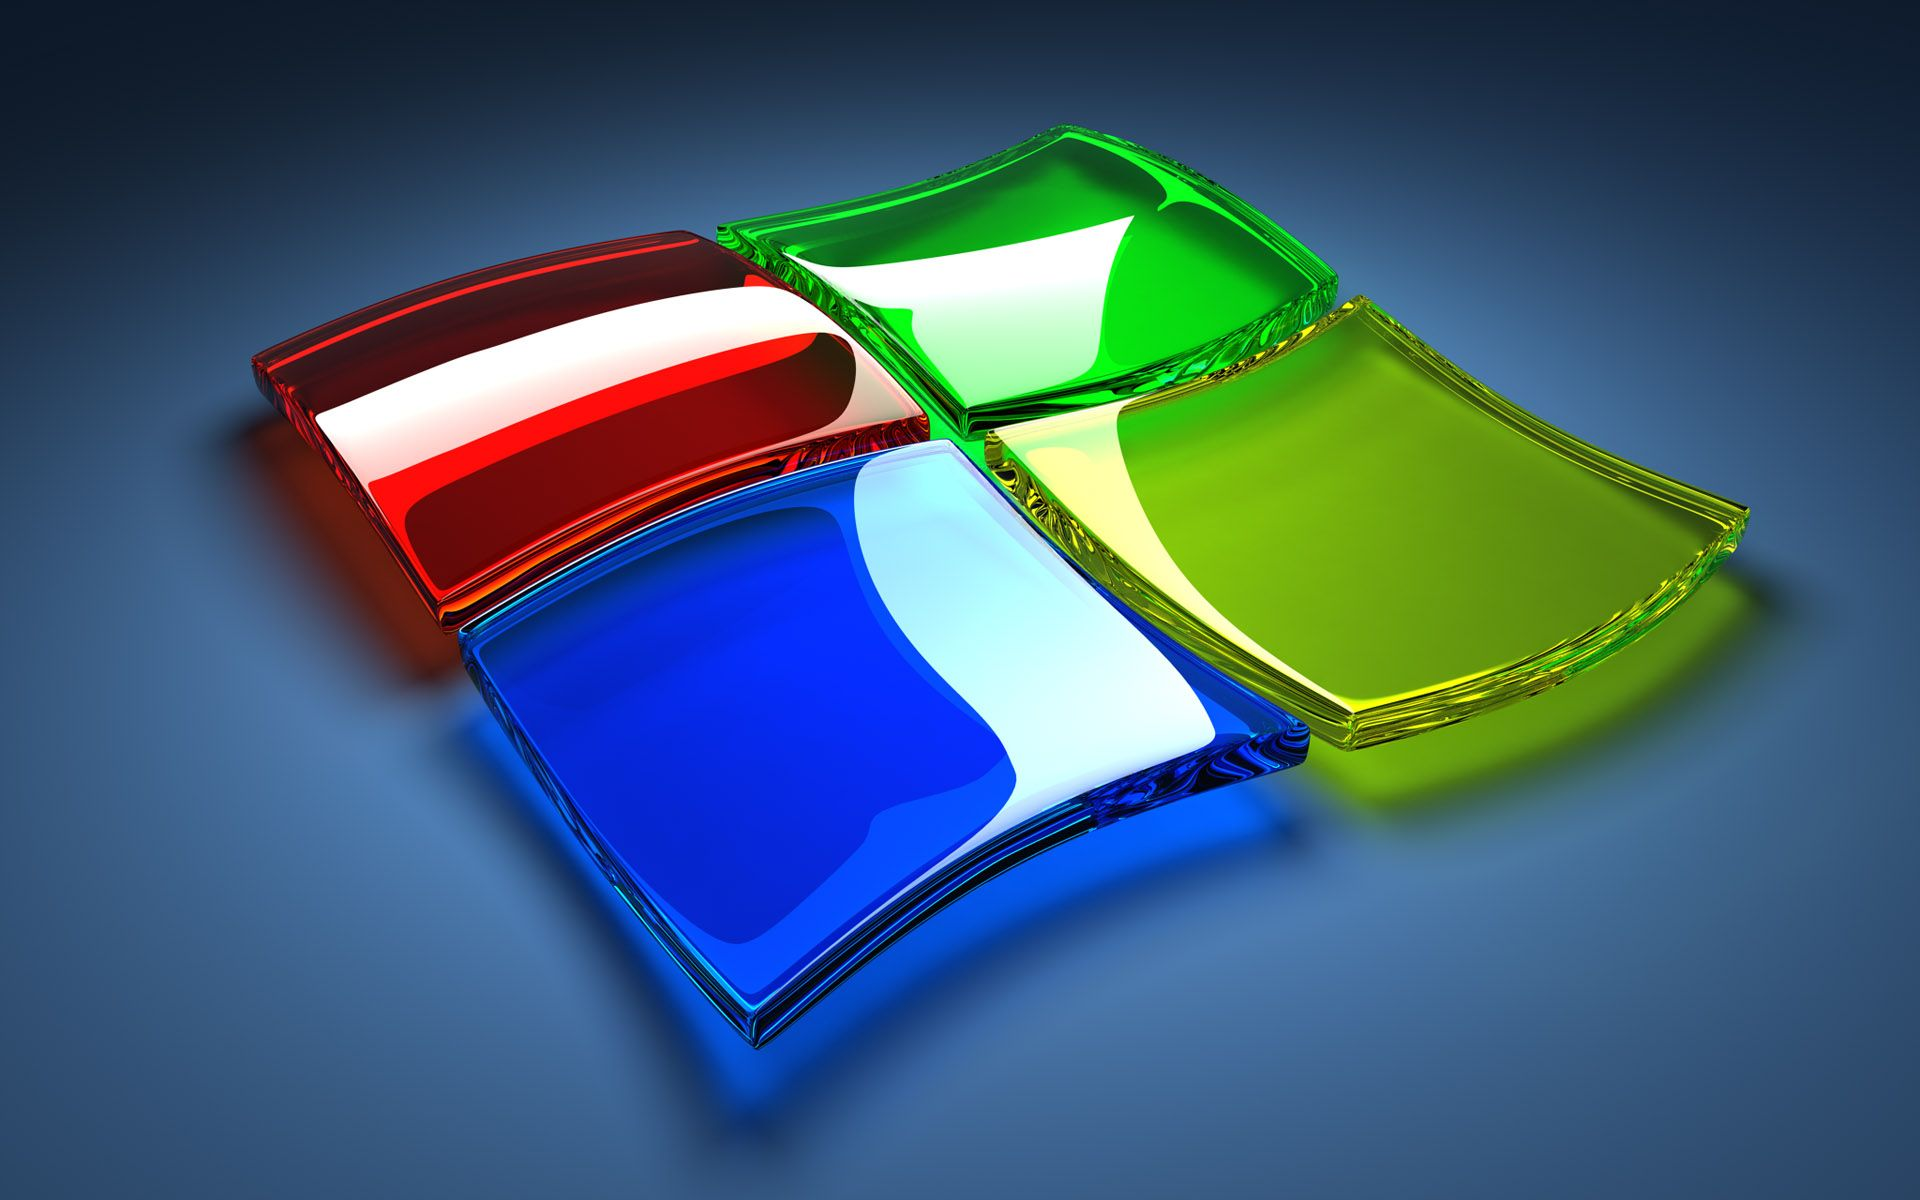 windows 7 3d hd widescreen desktop backgrounds 2400x1800px high